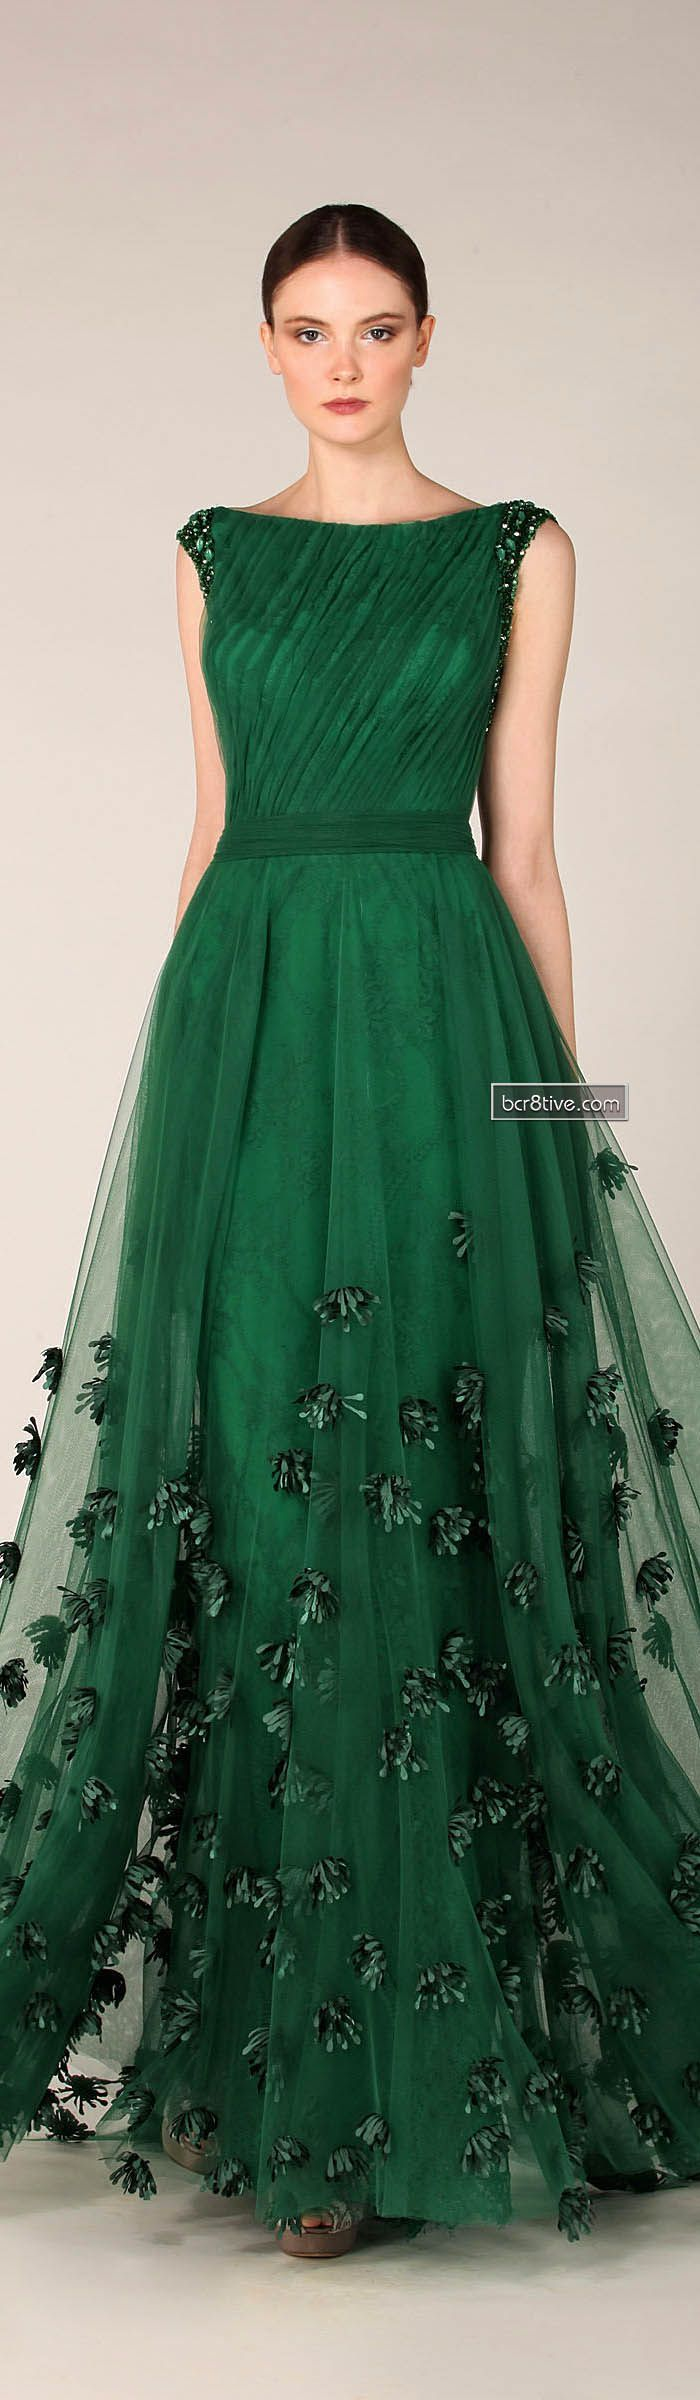 143 Tony Ward Fall Winter 2013-14. Nice formal dress to wear to a formal holiday party